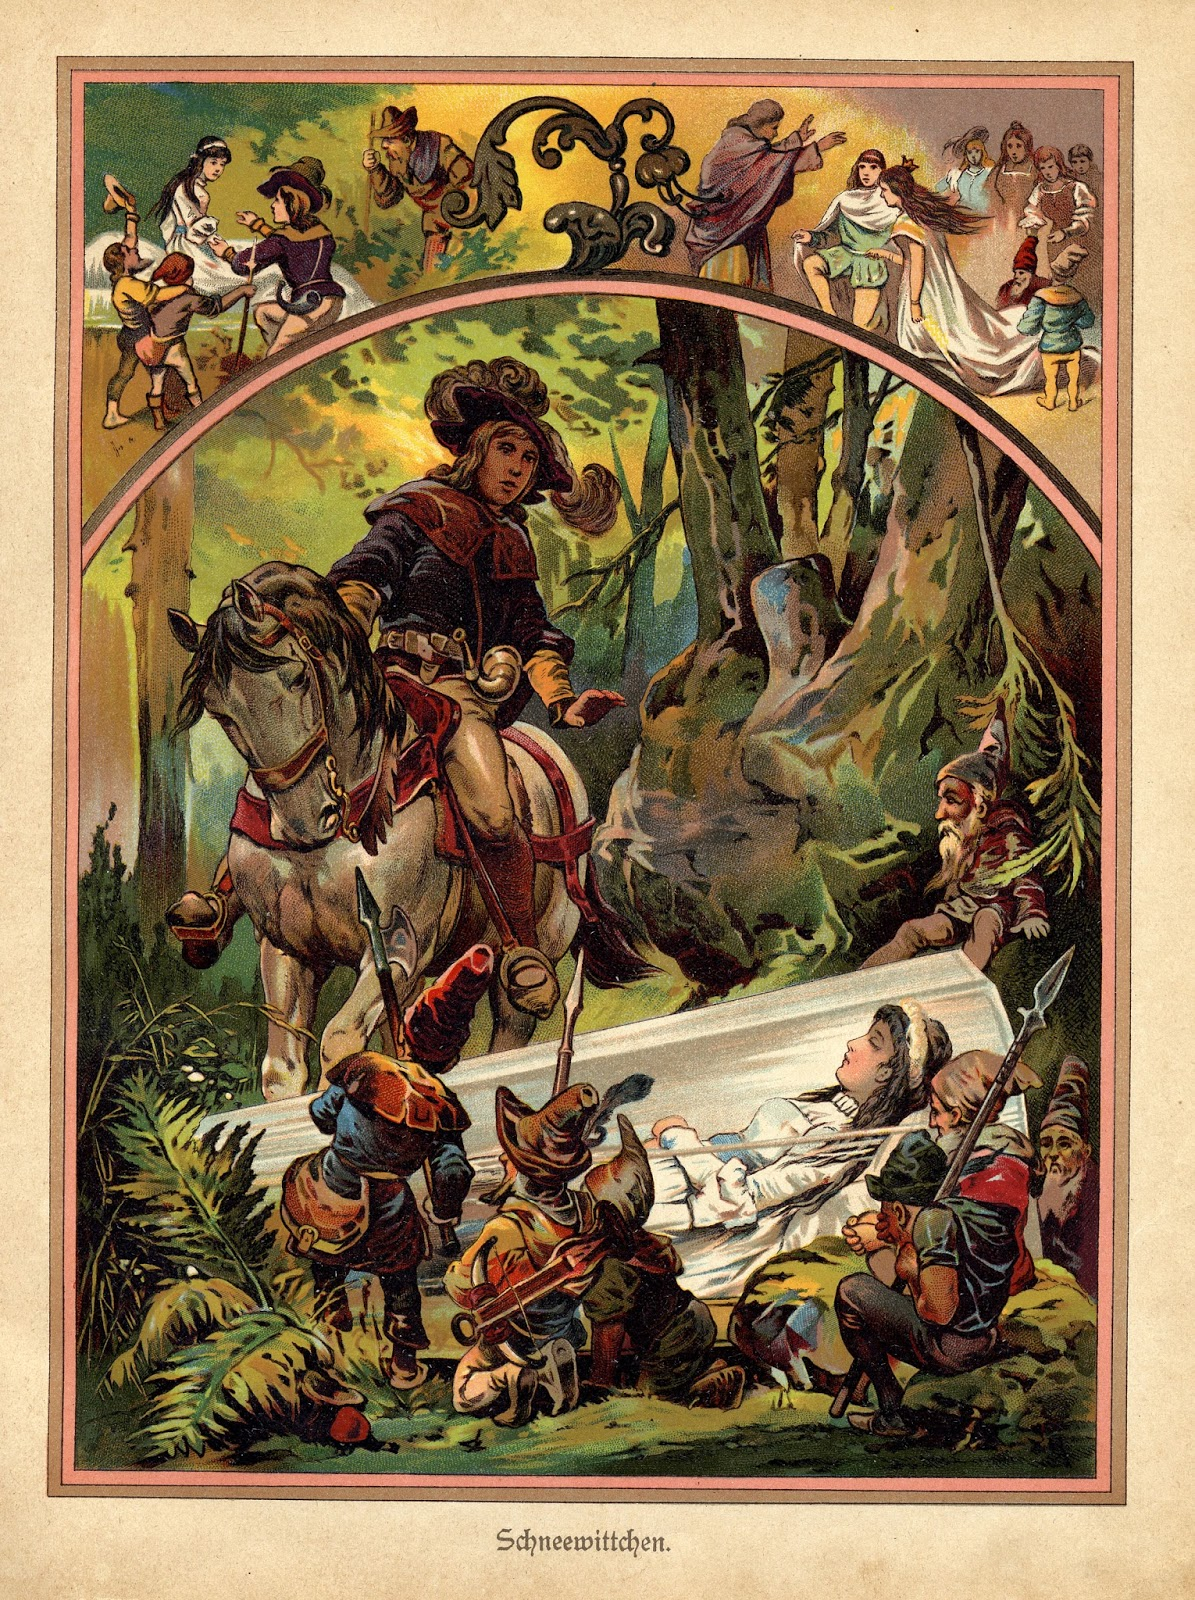 essays on brothers grimm Database of free european studies essays romanticism brothers grimm the influence of romanticism on the fairy tales of the brothers grimm the germany of the.